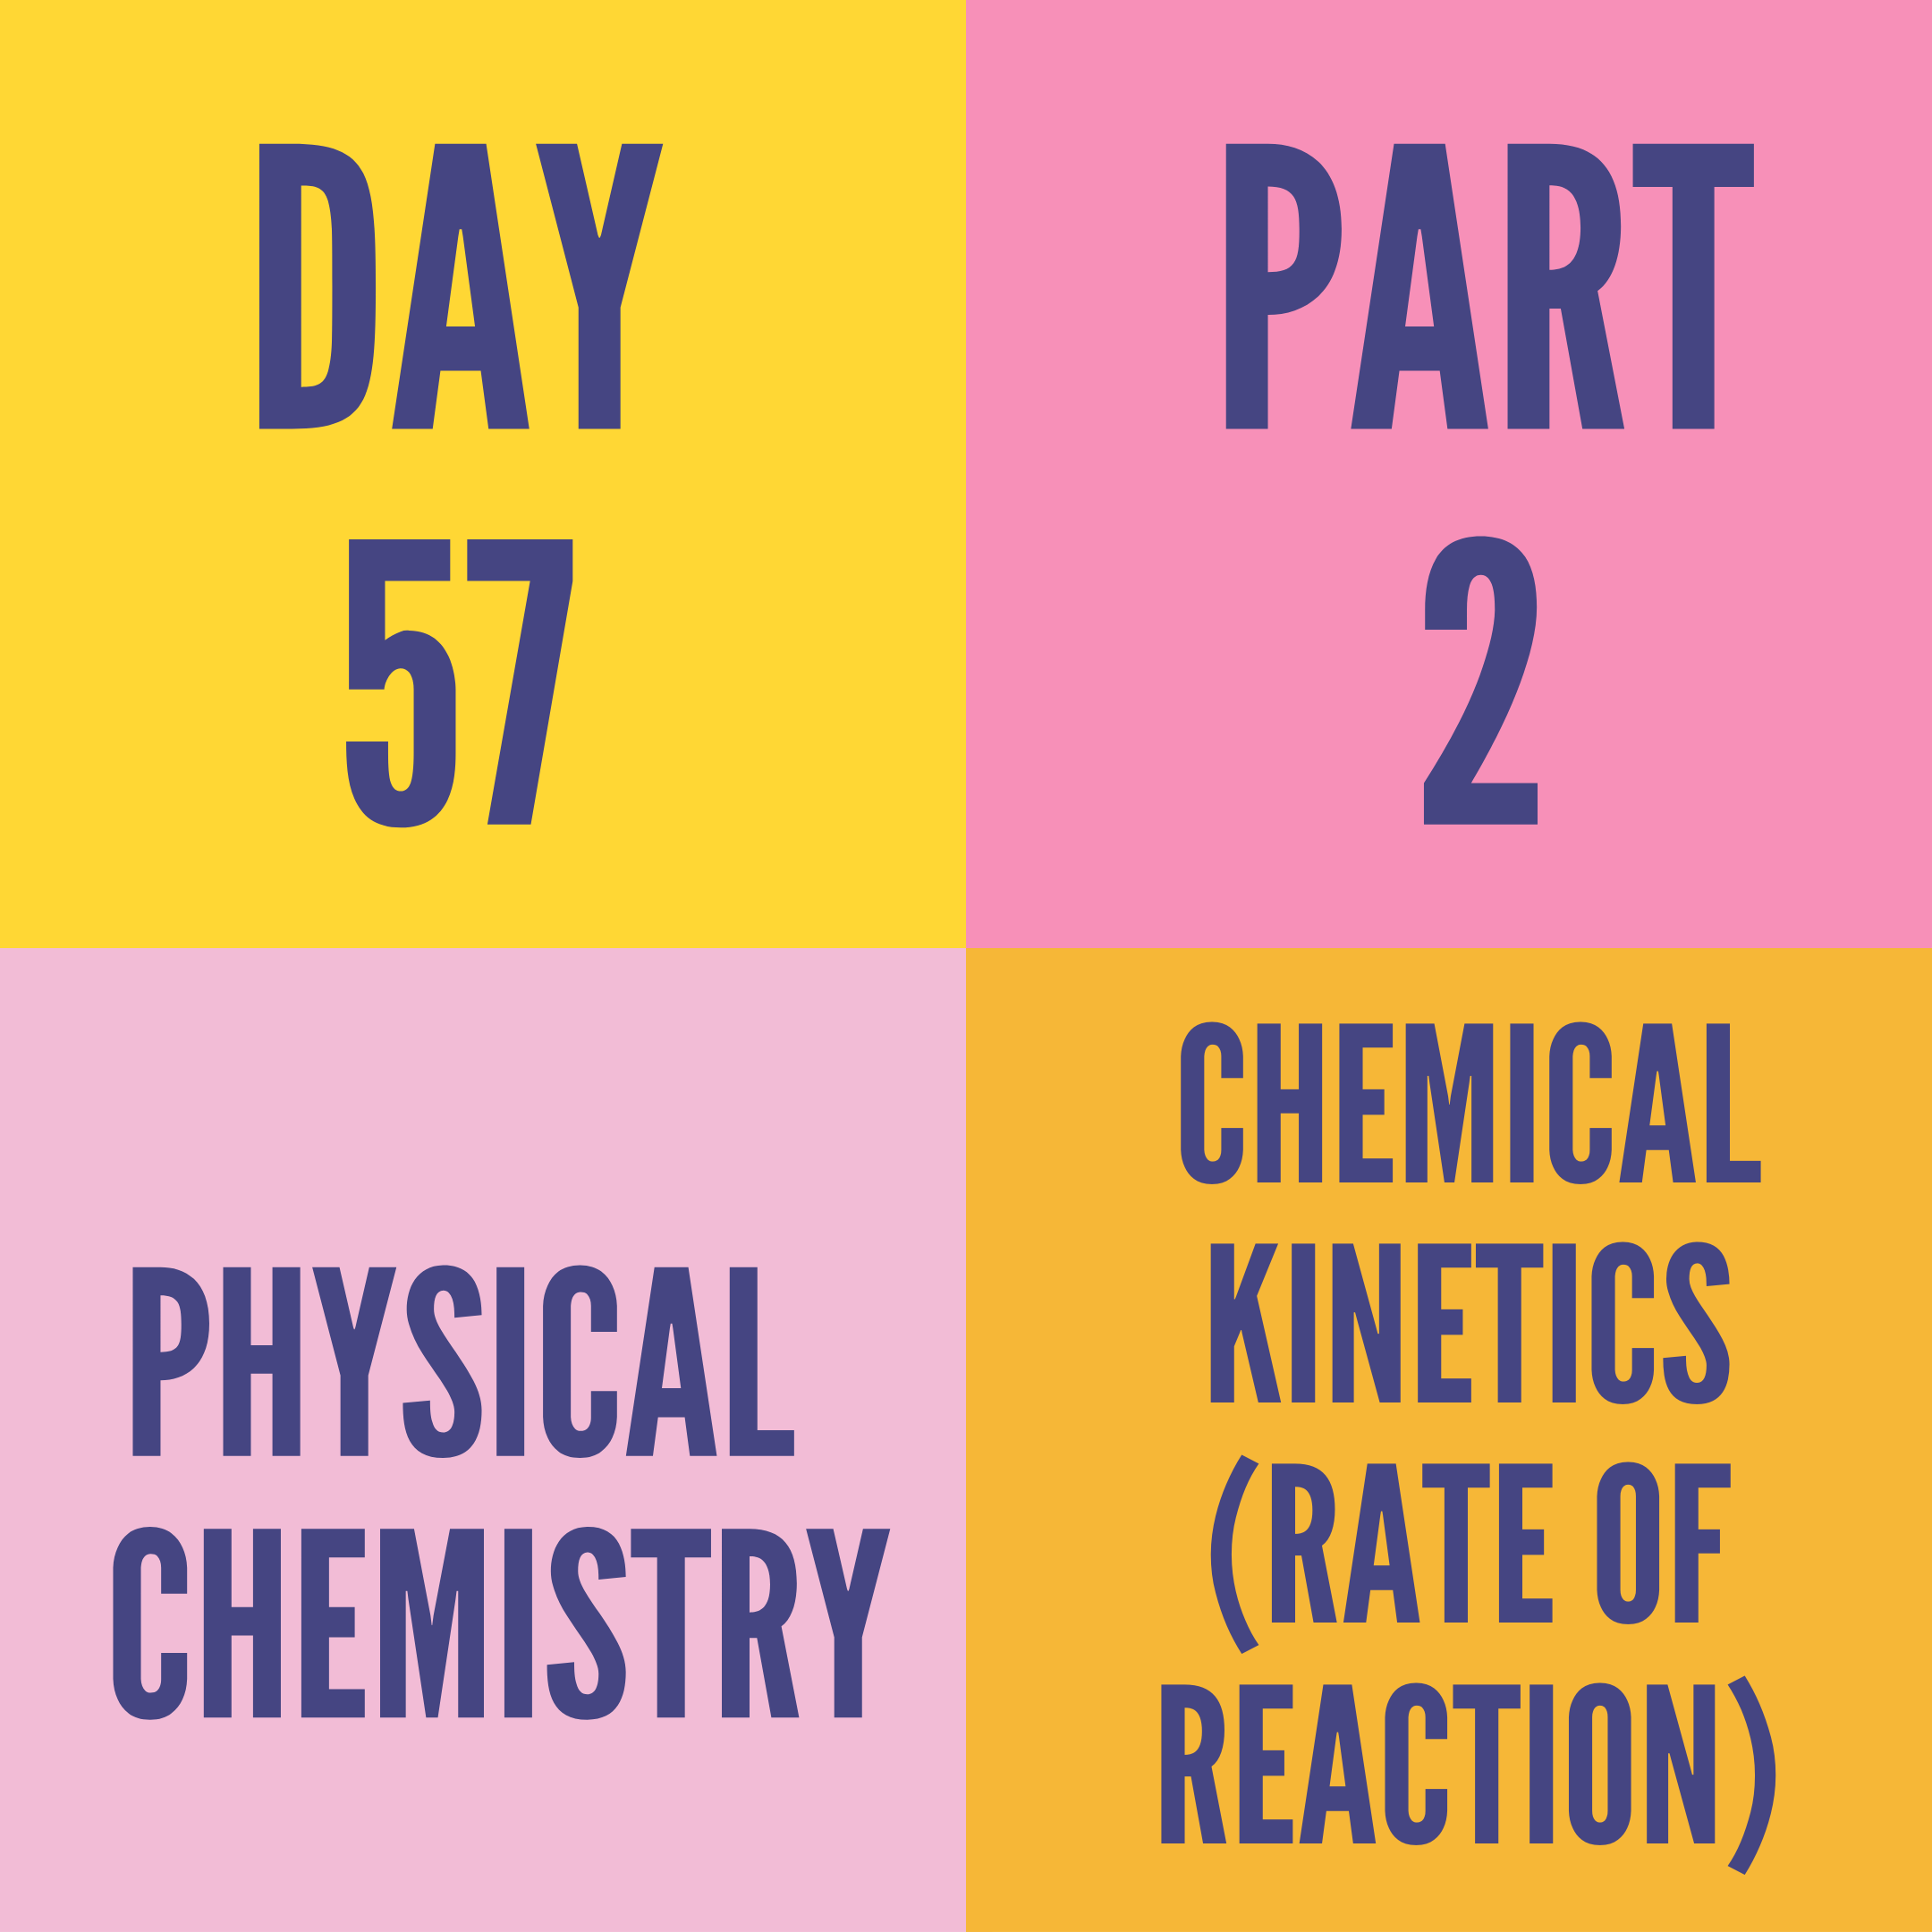 DAY-57 PART-2 CHEMICAL KINETICS (RATE OF REACTION)